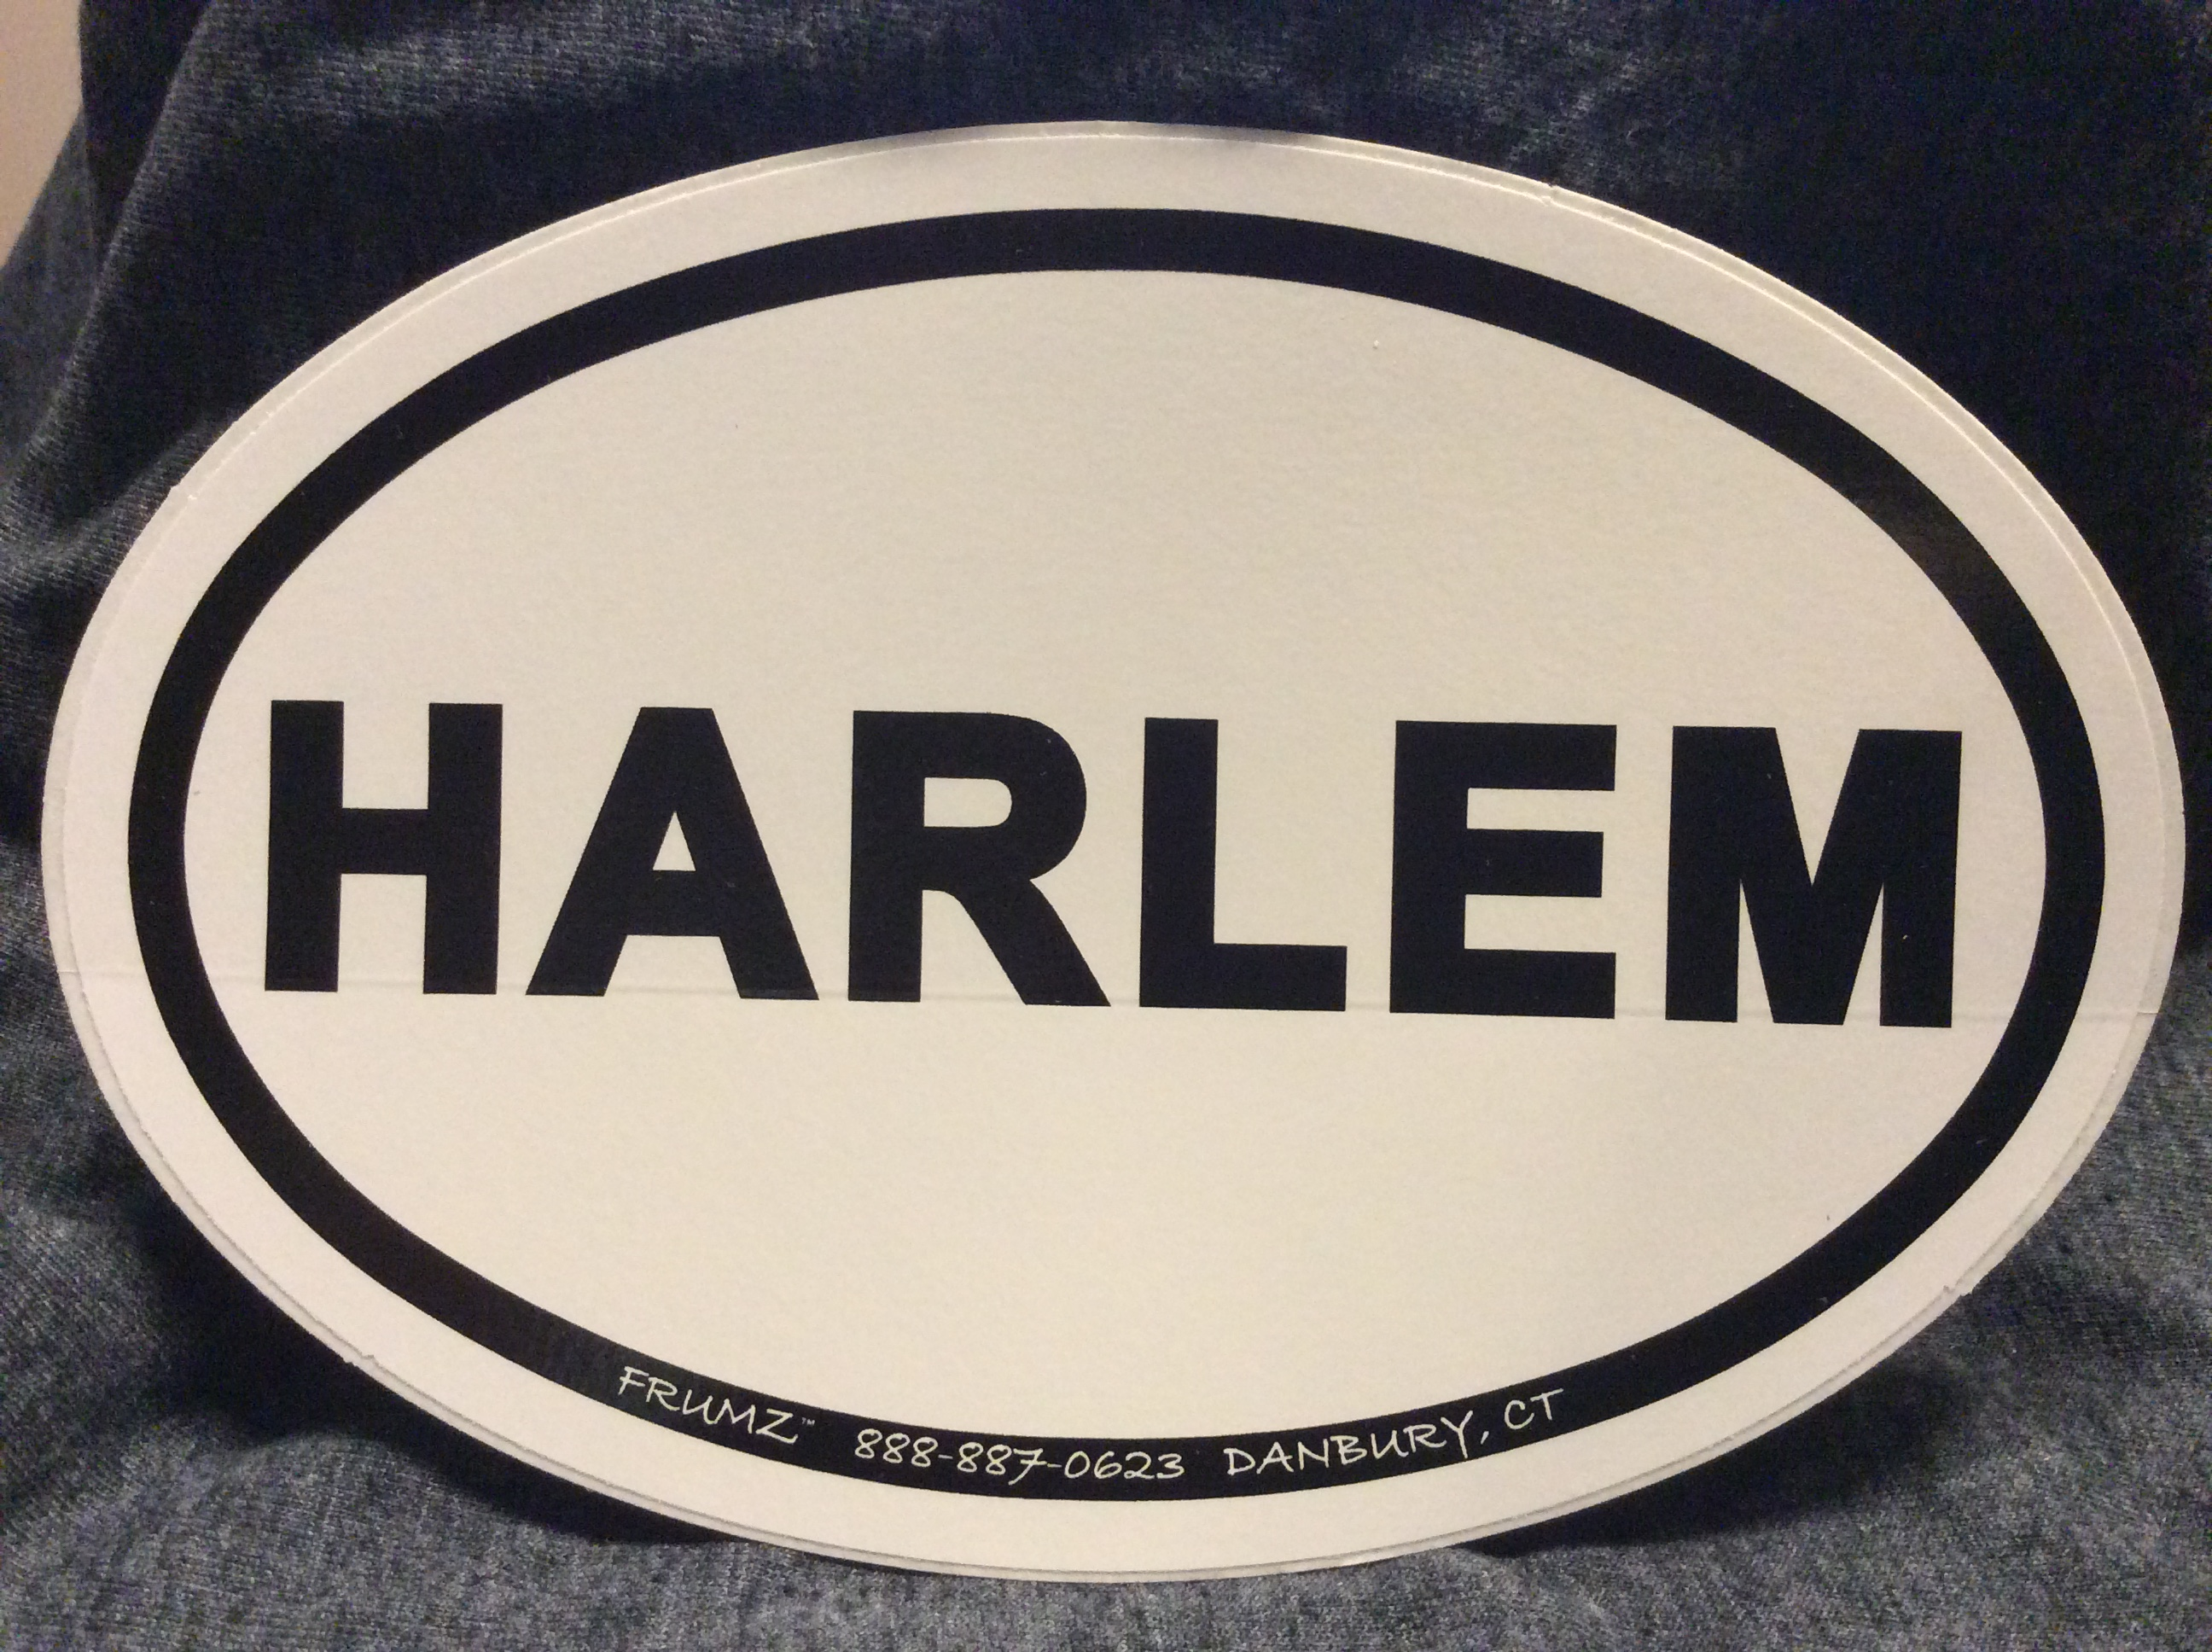 HARLEM oval sticker decal